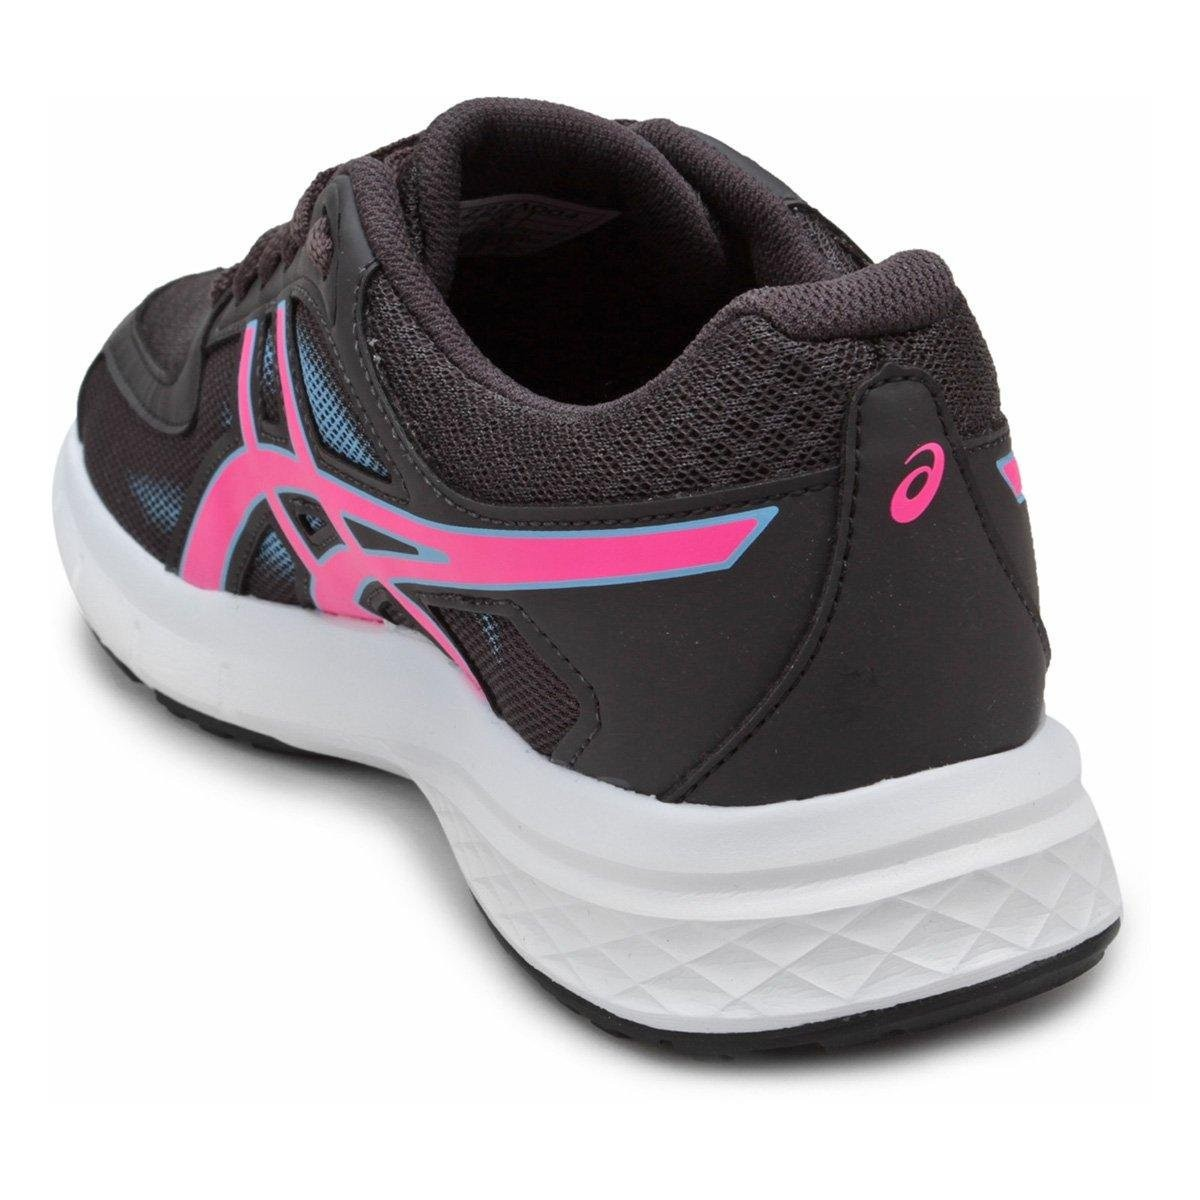 Tênis Asics Gel Transition Feminino - Grafite e Rosa